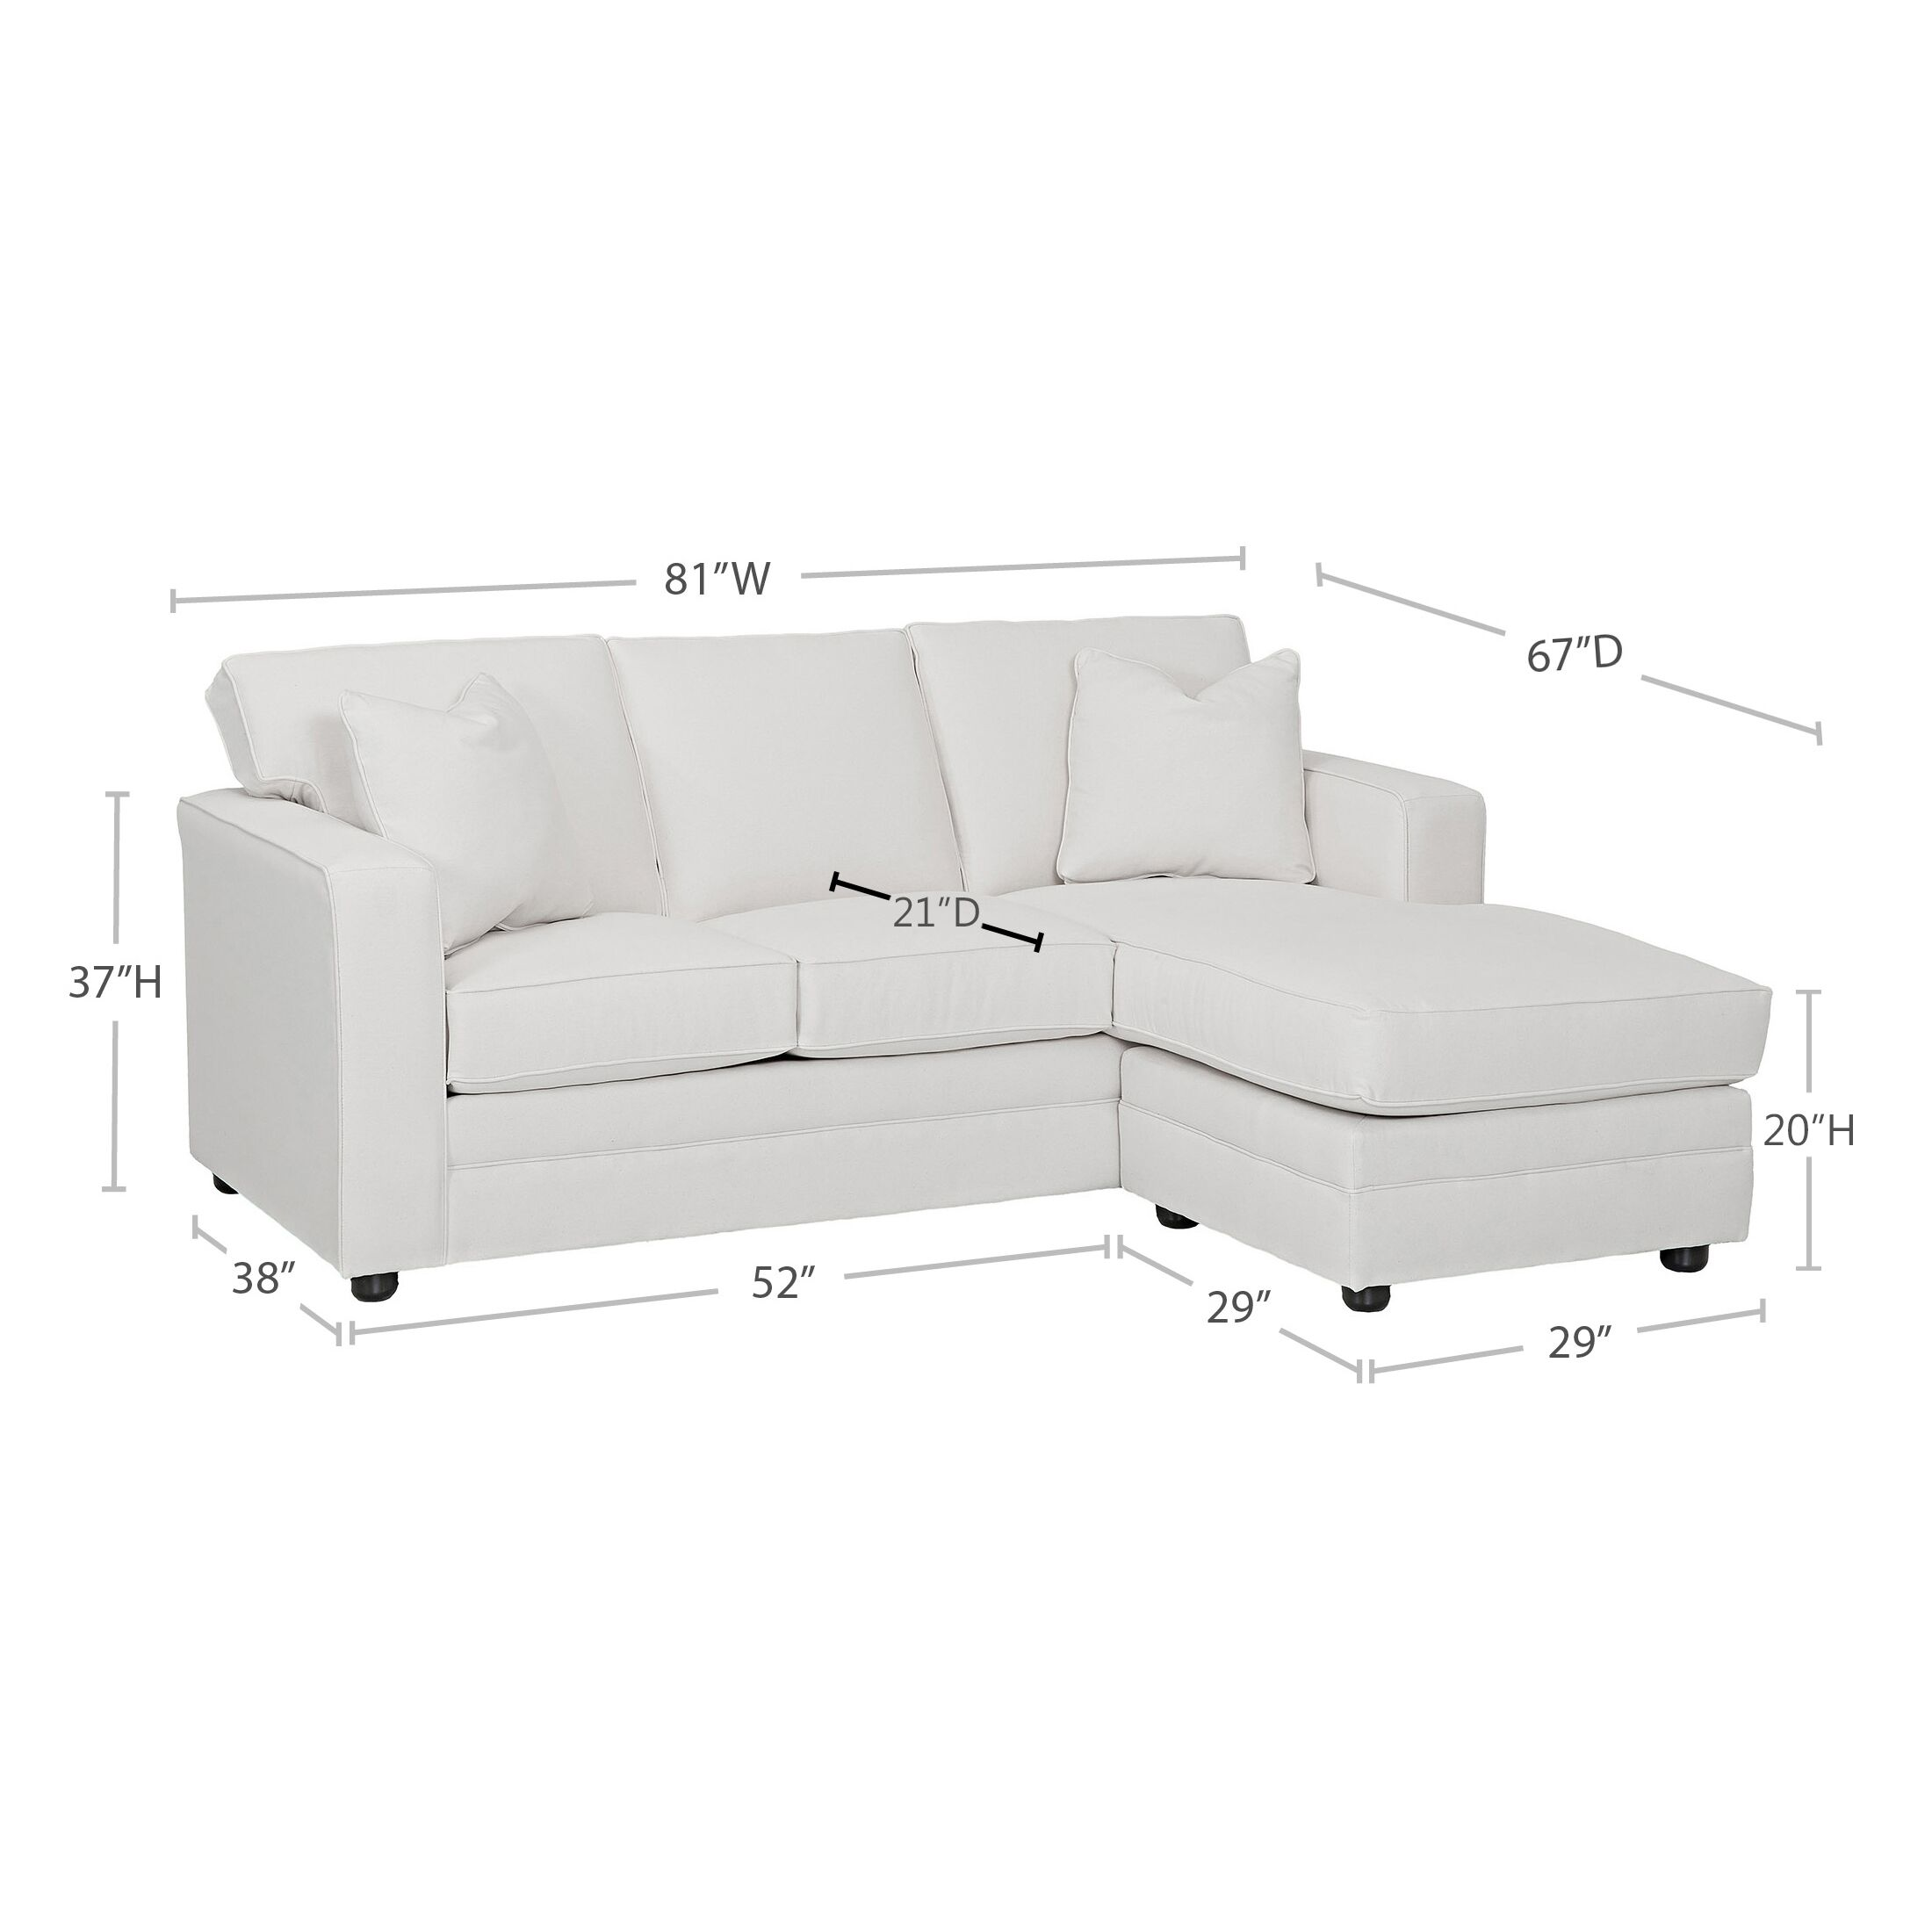 Andrew Reversible Sectional Body Fabric: Tibby Pewter, Pillow Fabric: Pebble Greystone, Piping Fabric: Spinnsol Optic White